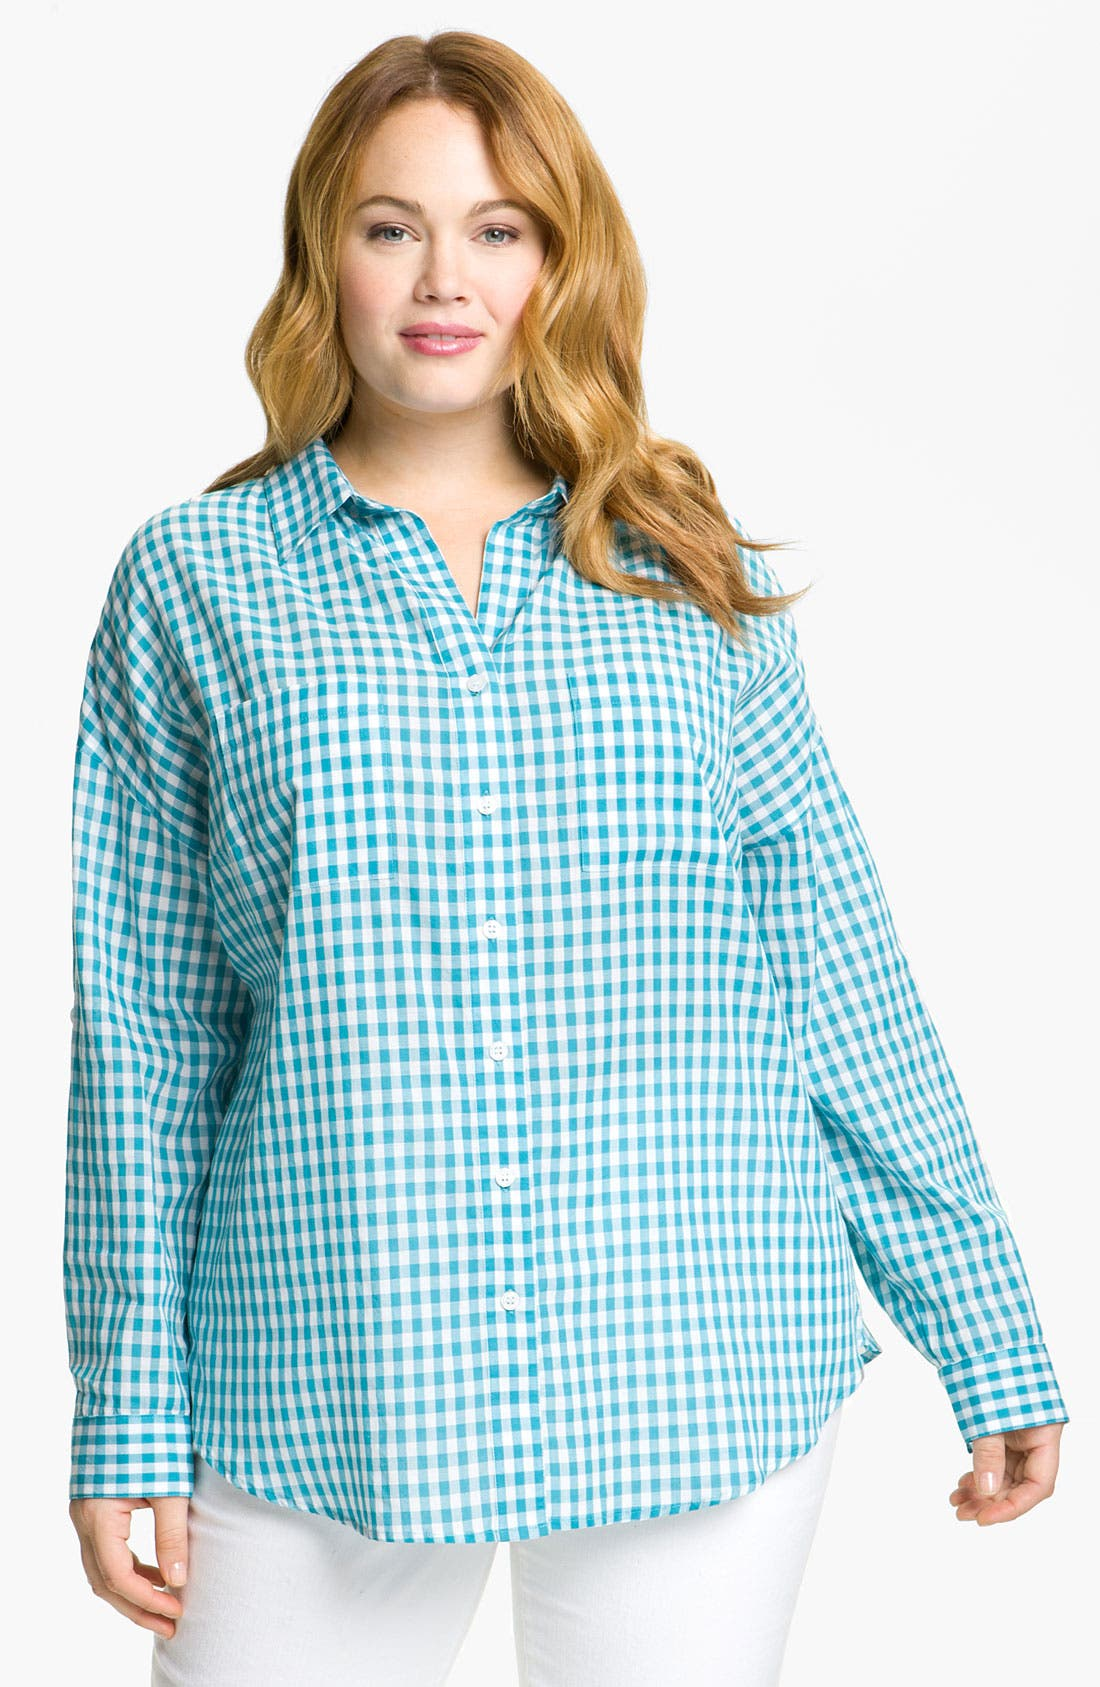 Alternate Image 1 Selected - Sandra Ingrish Gingham Check Shirt (Plus)